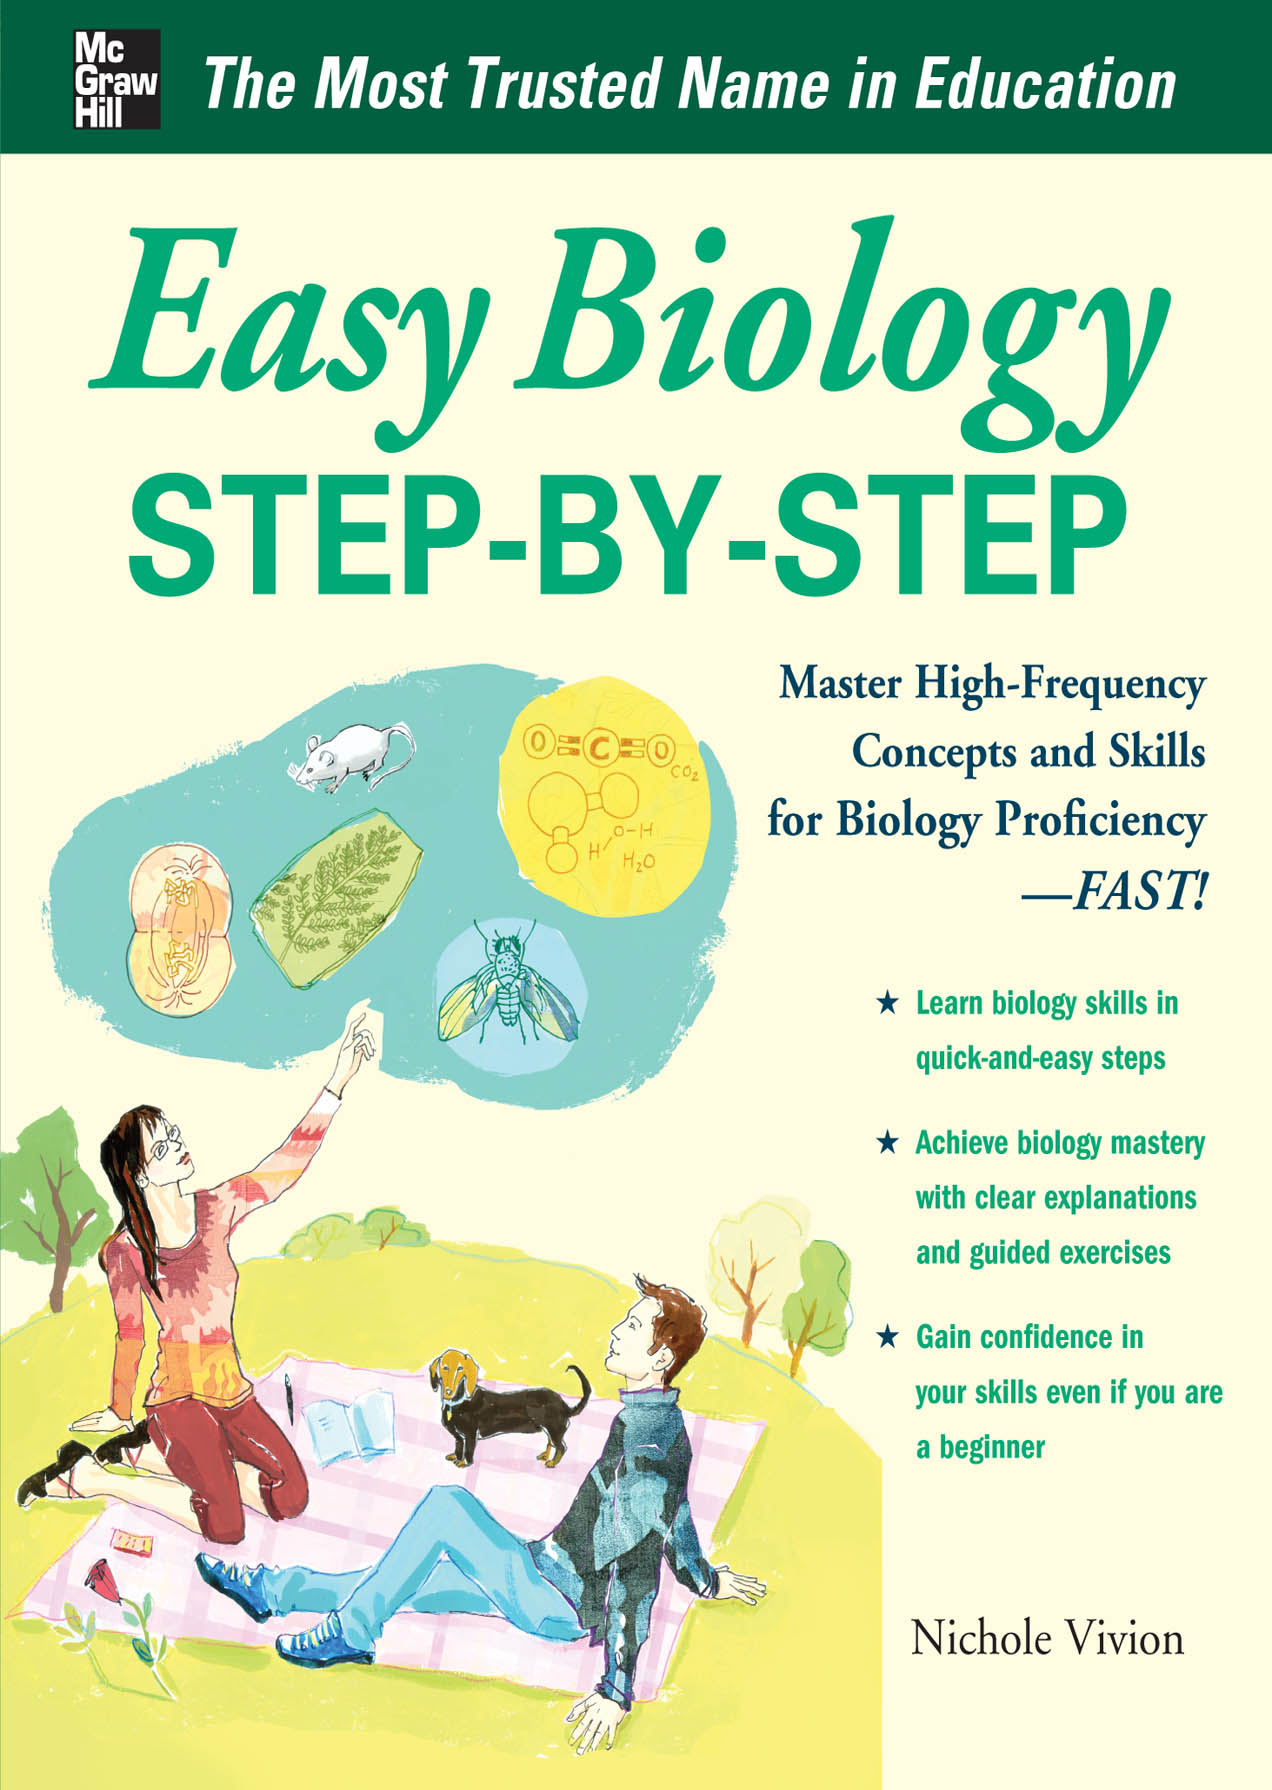 Easy Biology Step-by-Step